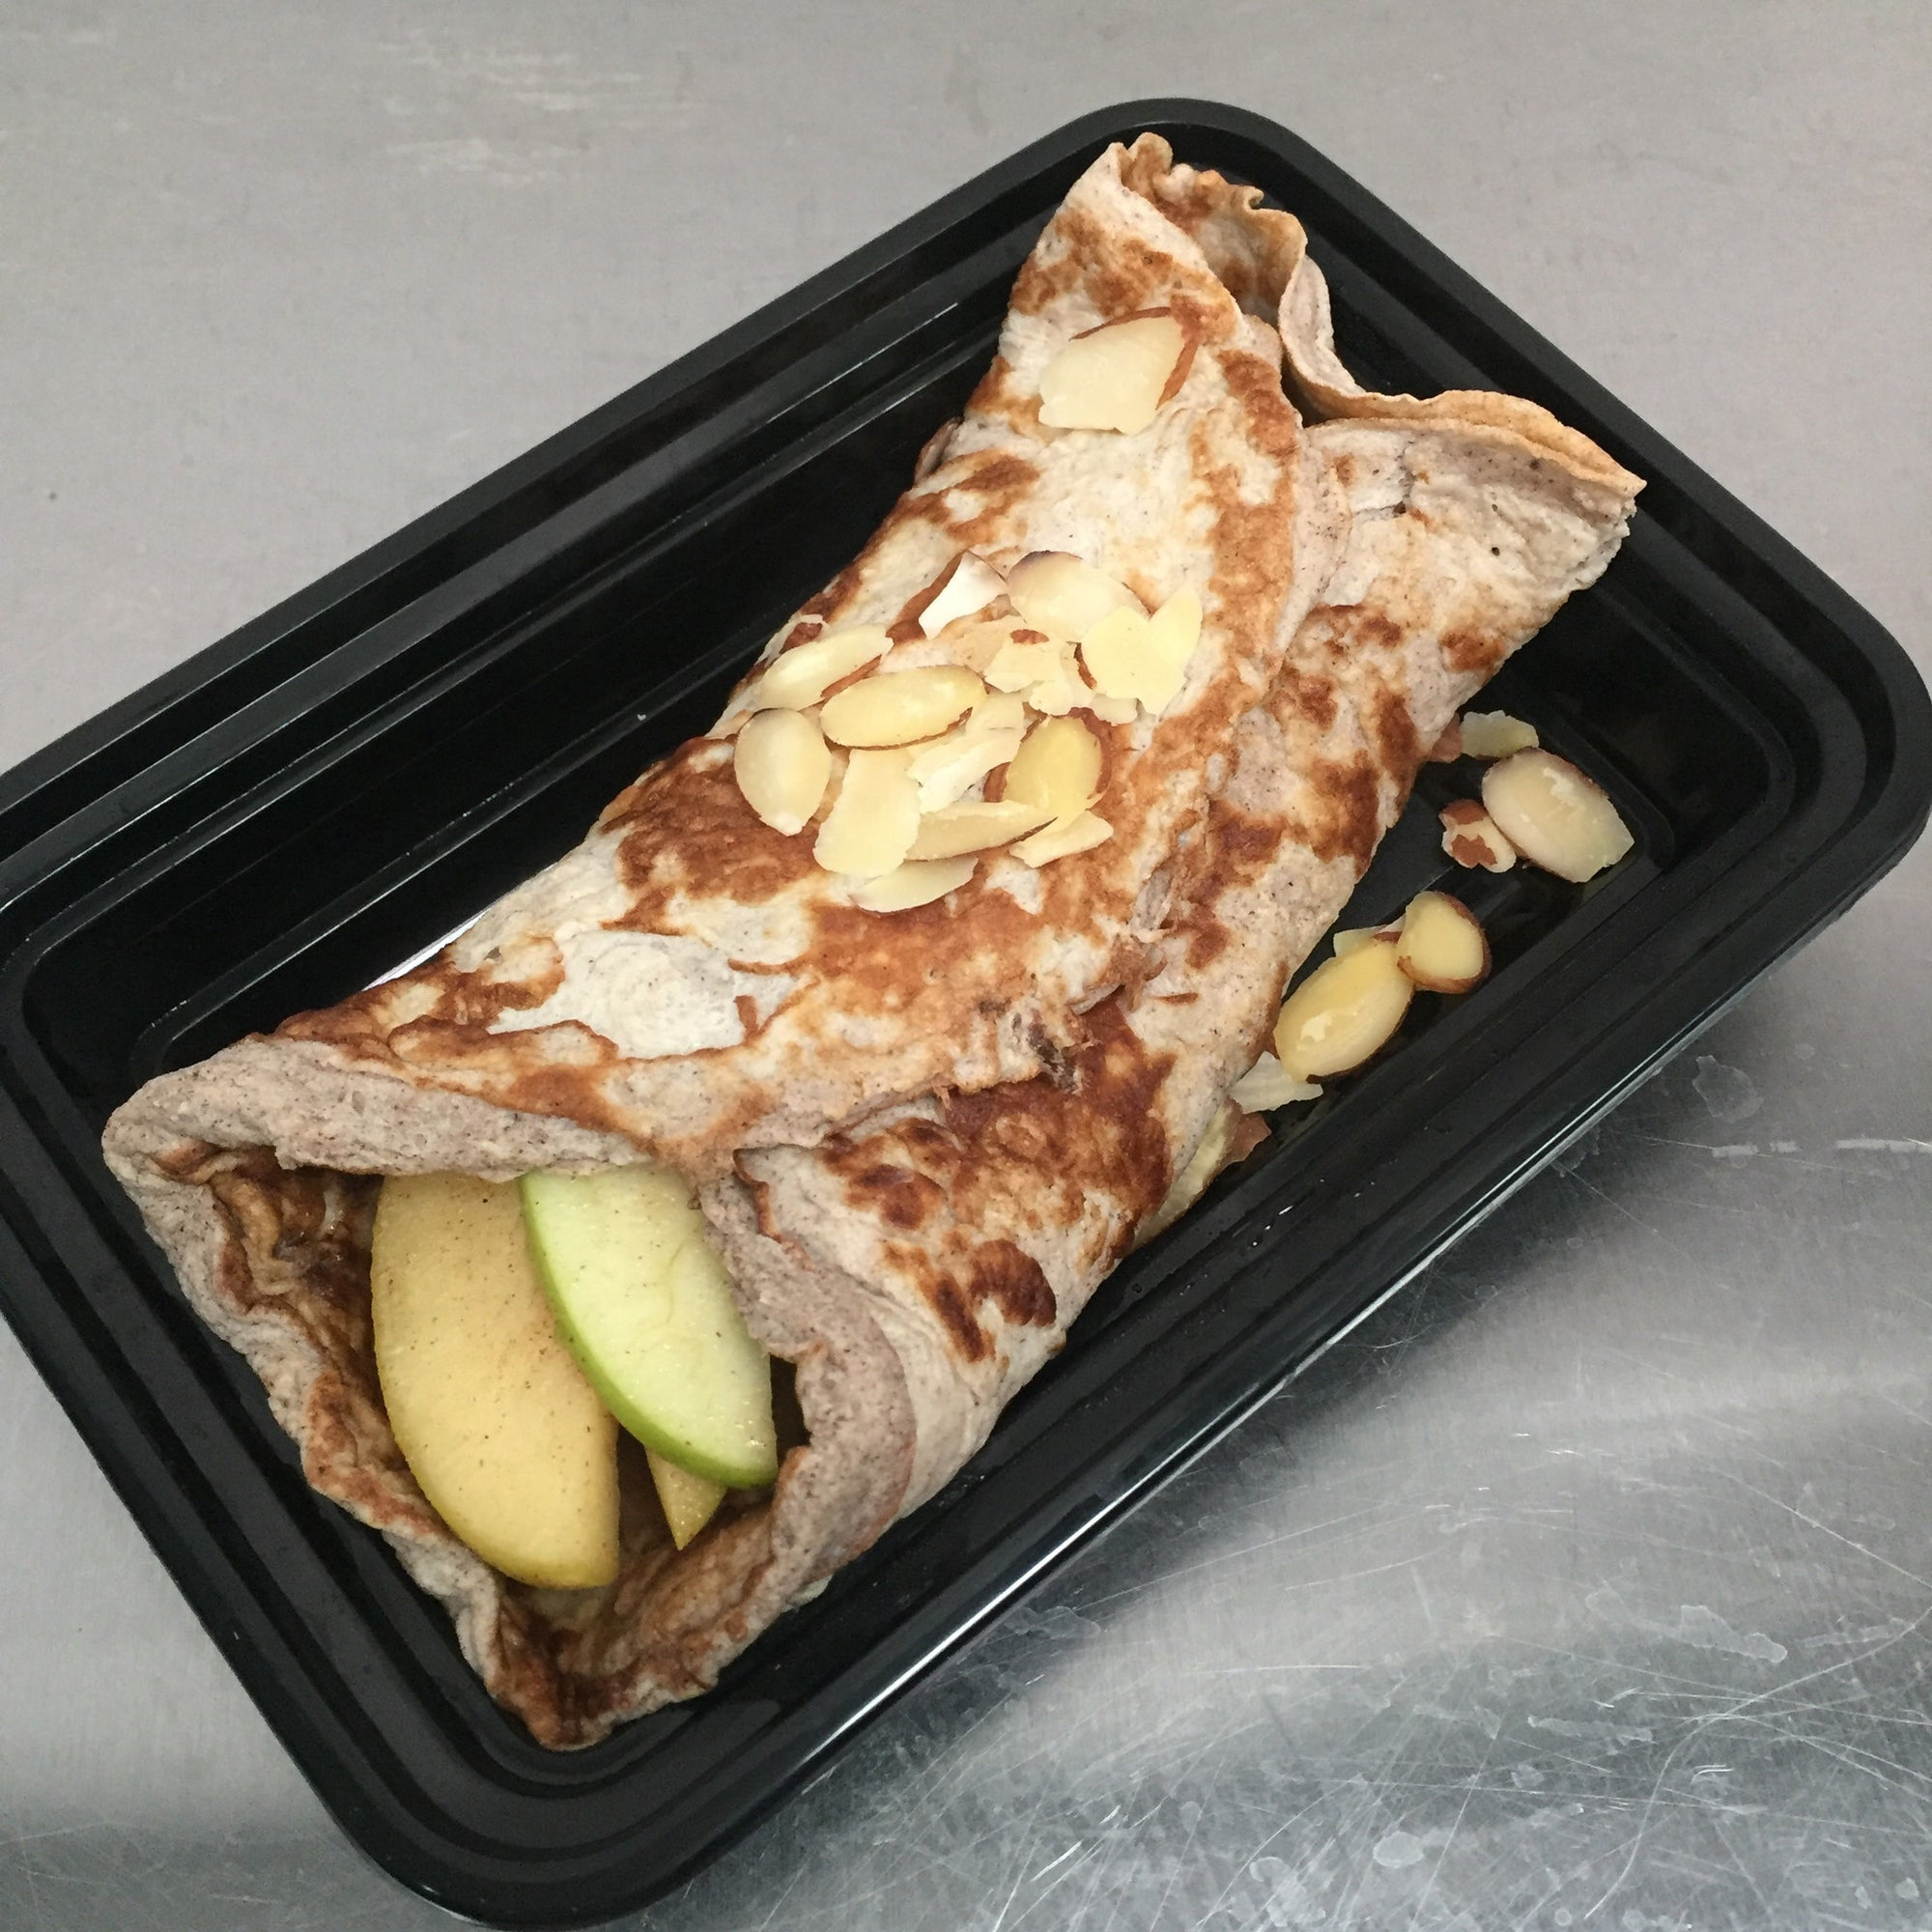 Buckwheat Protein Crepe w/ Almond Butter & Sauteed Apples